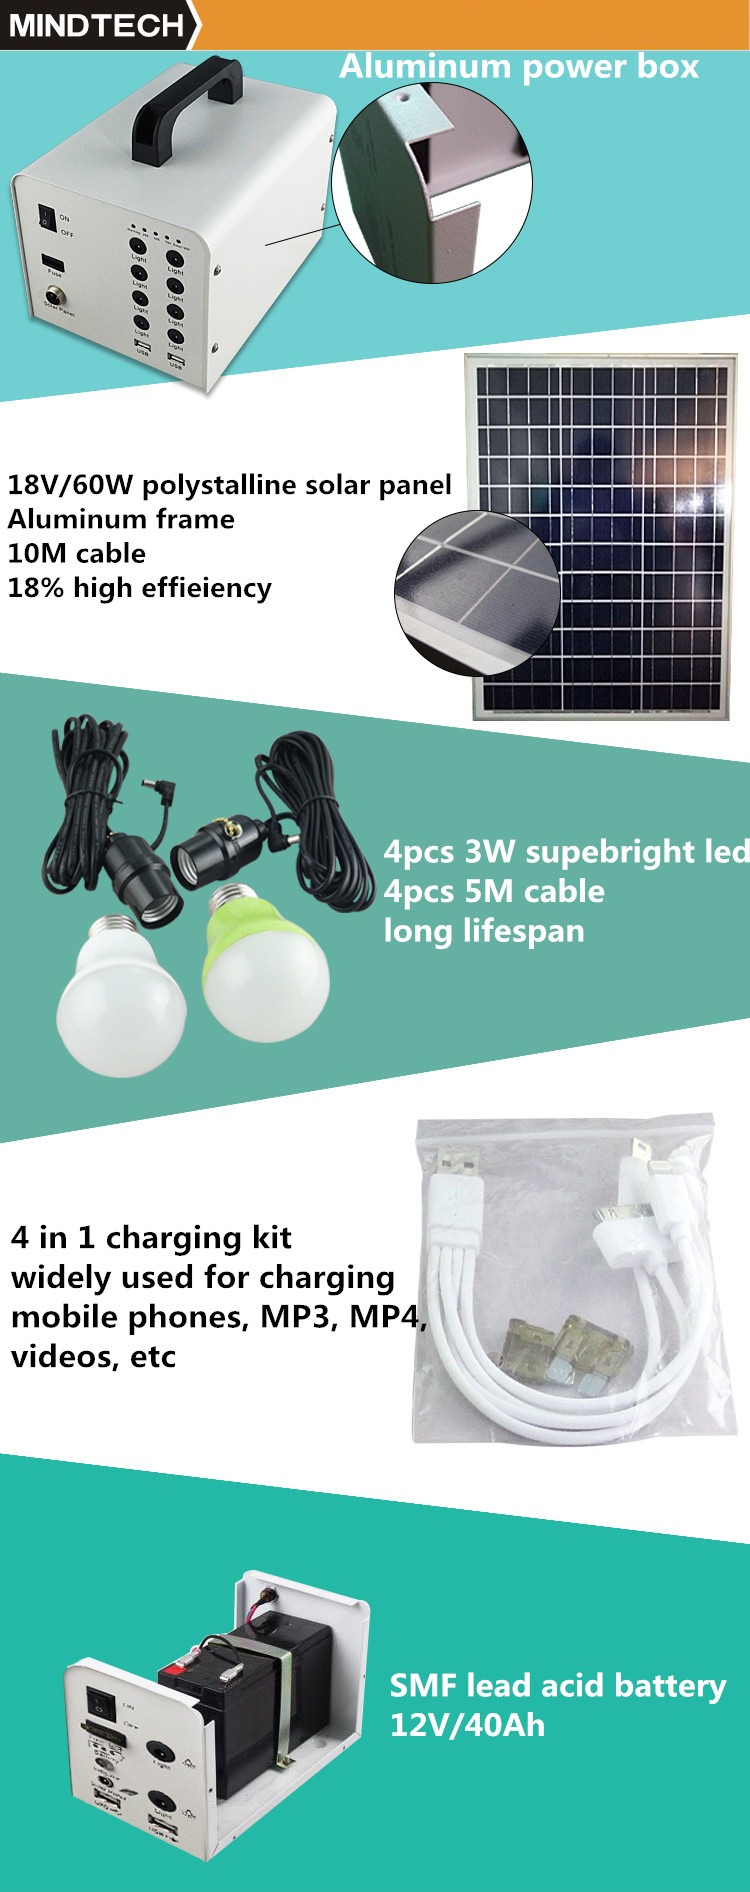 2017 480wh solar power energy system kit lead acid battery system with 60w solar panel for home and emergency use